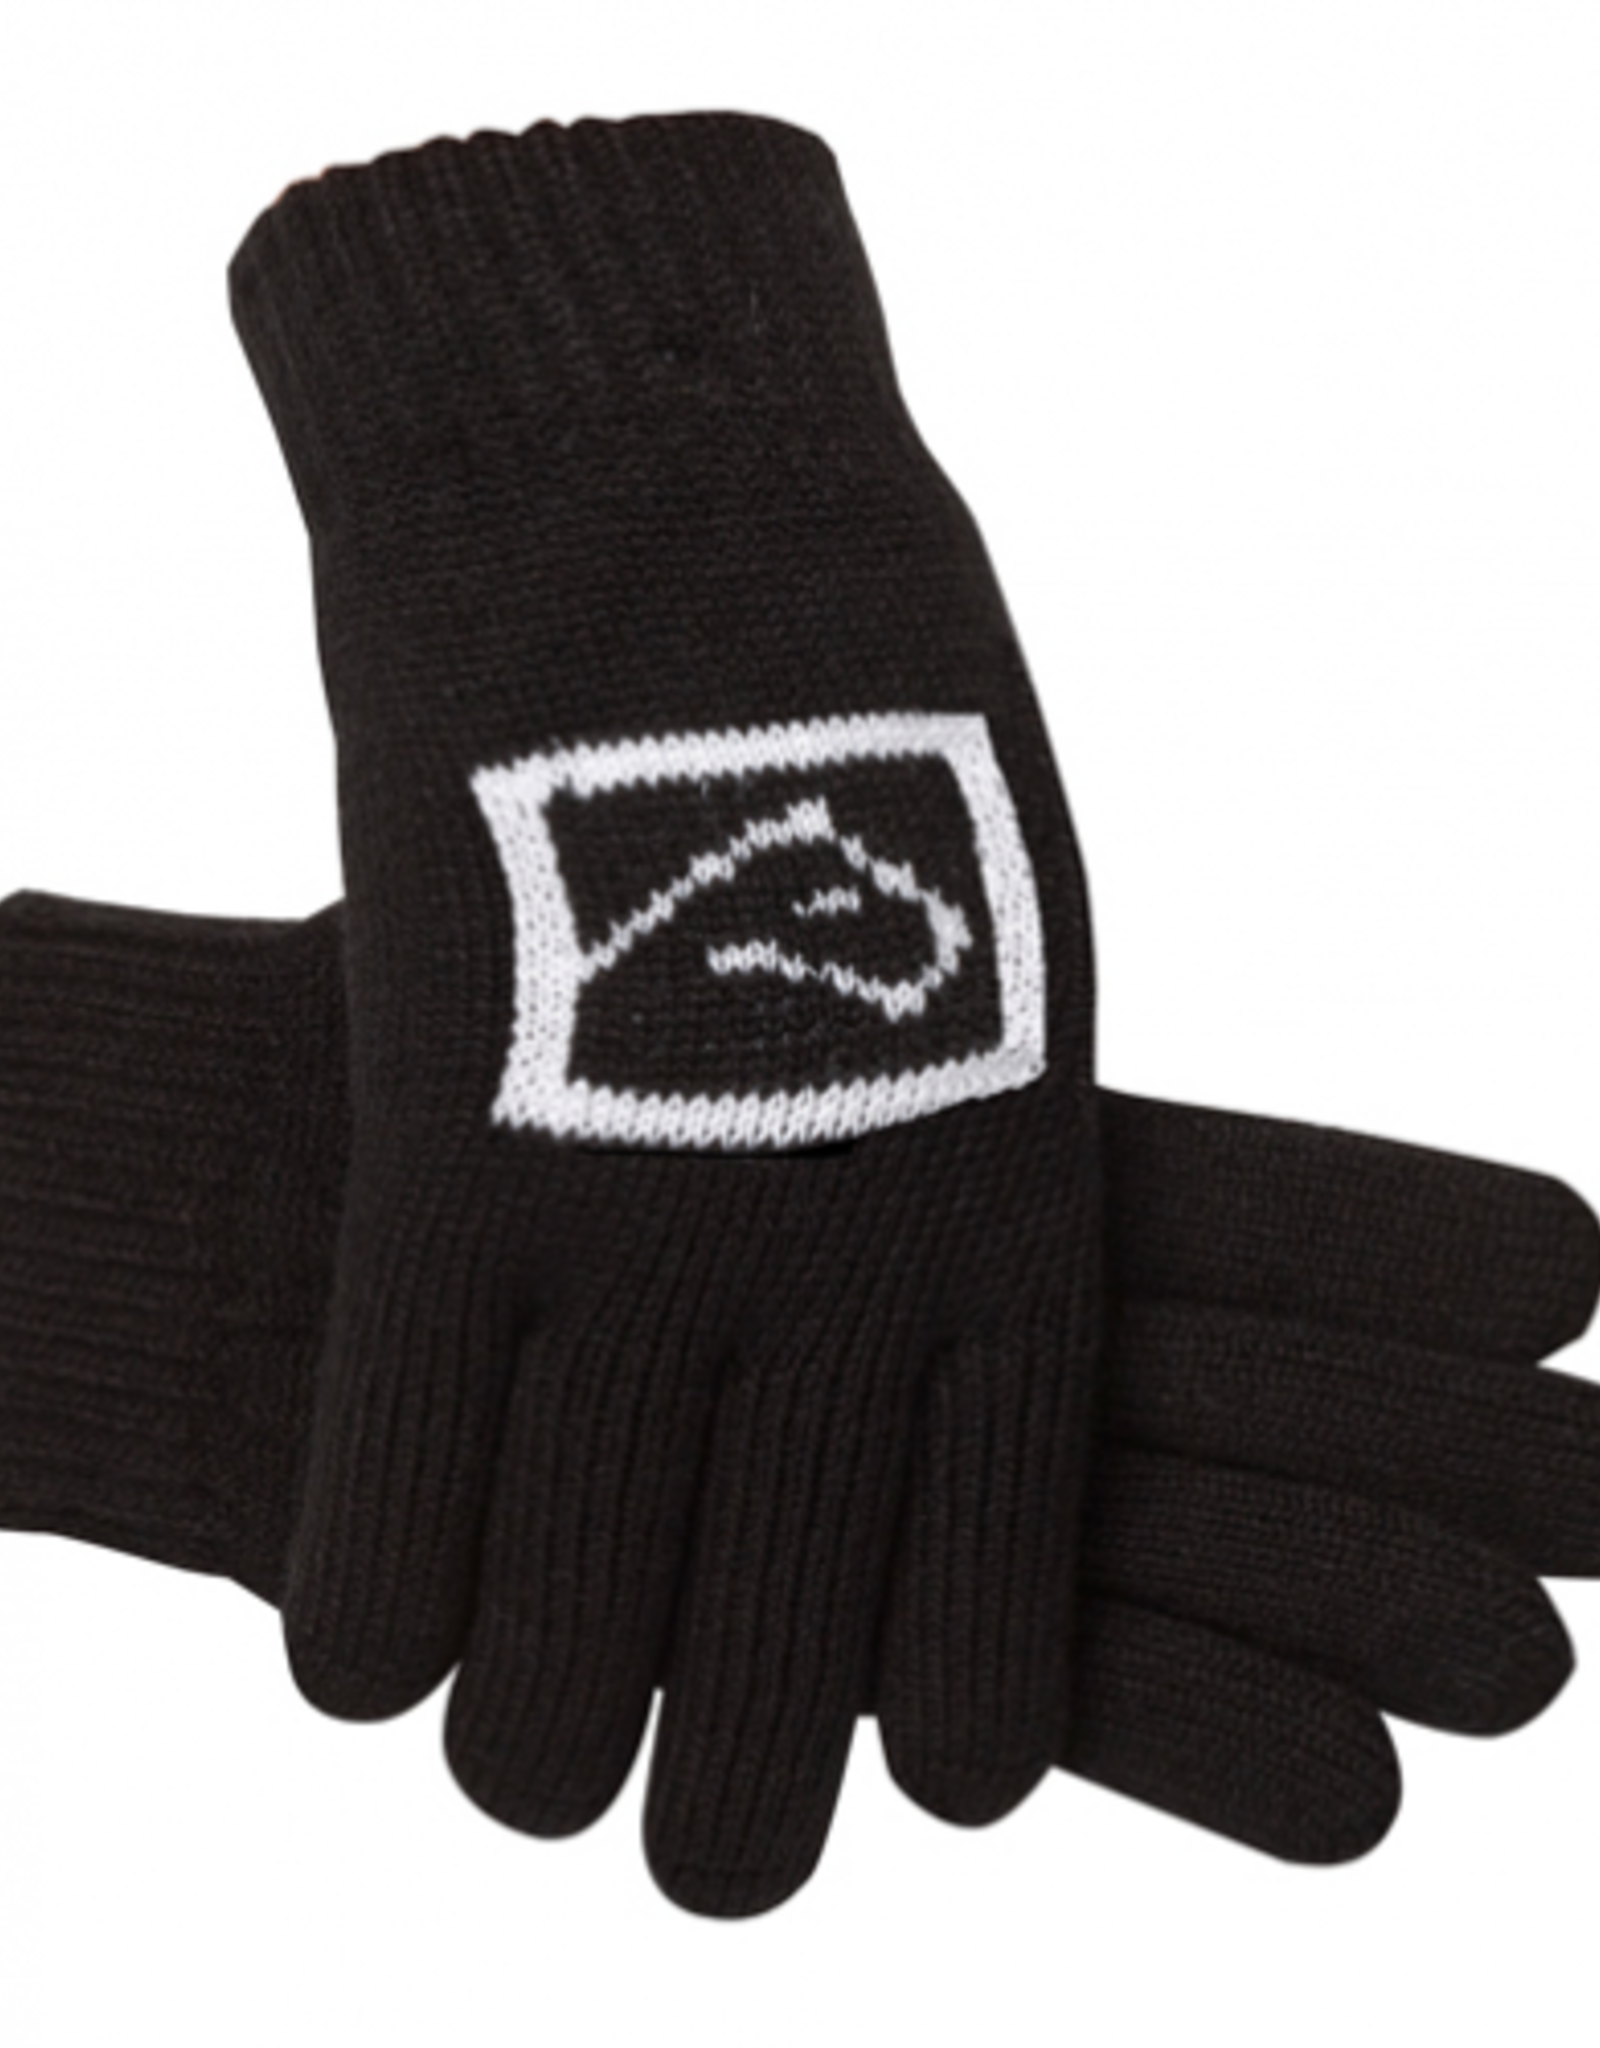 SSG WOOL/ ACRYLIC KNIT RIDING GLOVES